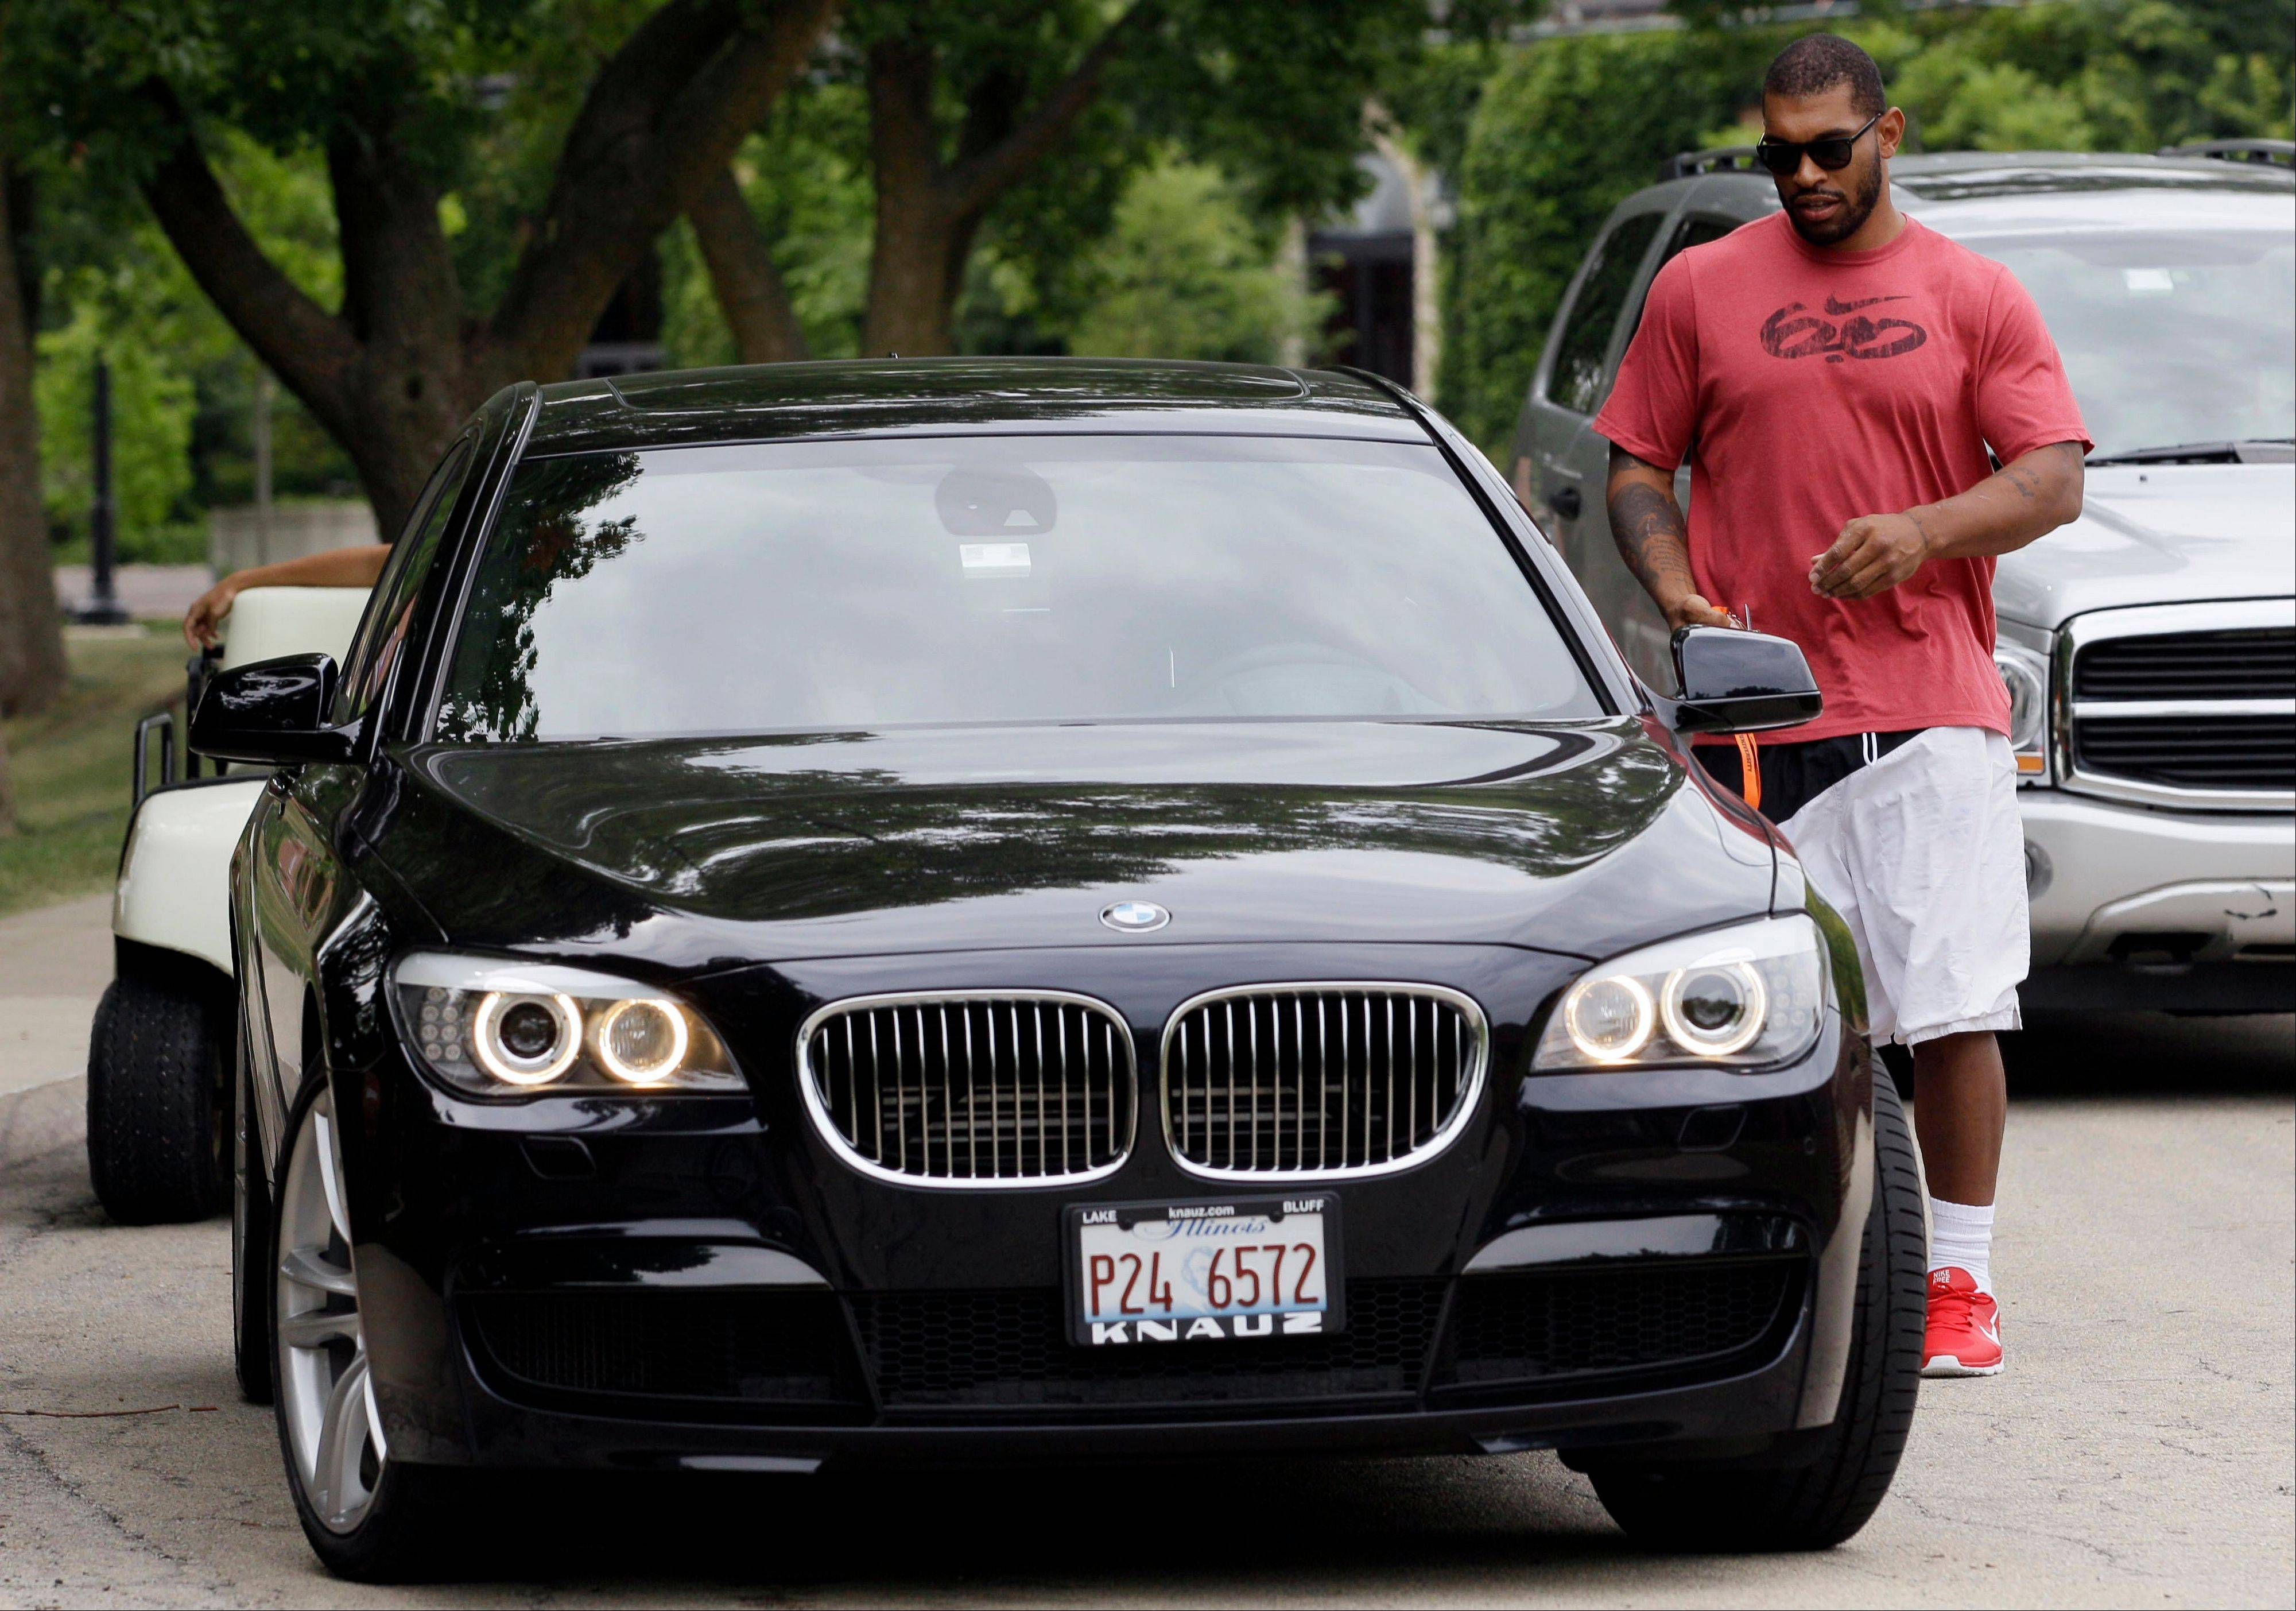 Chicago Bears defensive end Julius Peppers arrives at NFL football training camp at Olivet Nazarene University in Bourbonnais, Ill., Tuesday, July 24, 2012. (AP Photo/Nam Y. Huh)